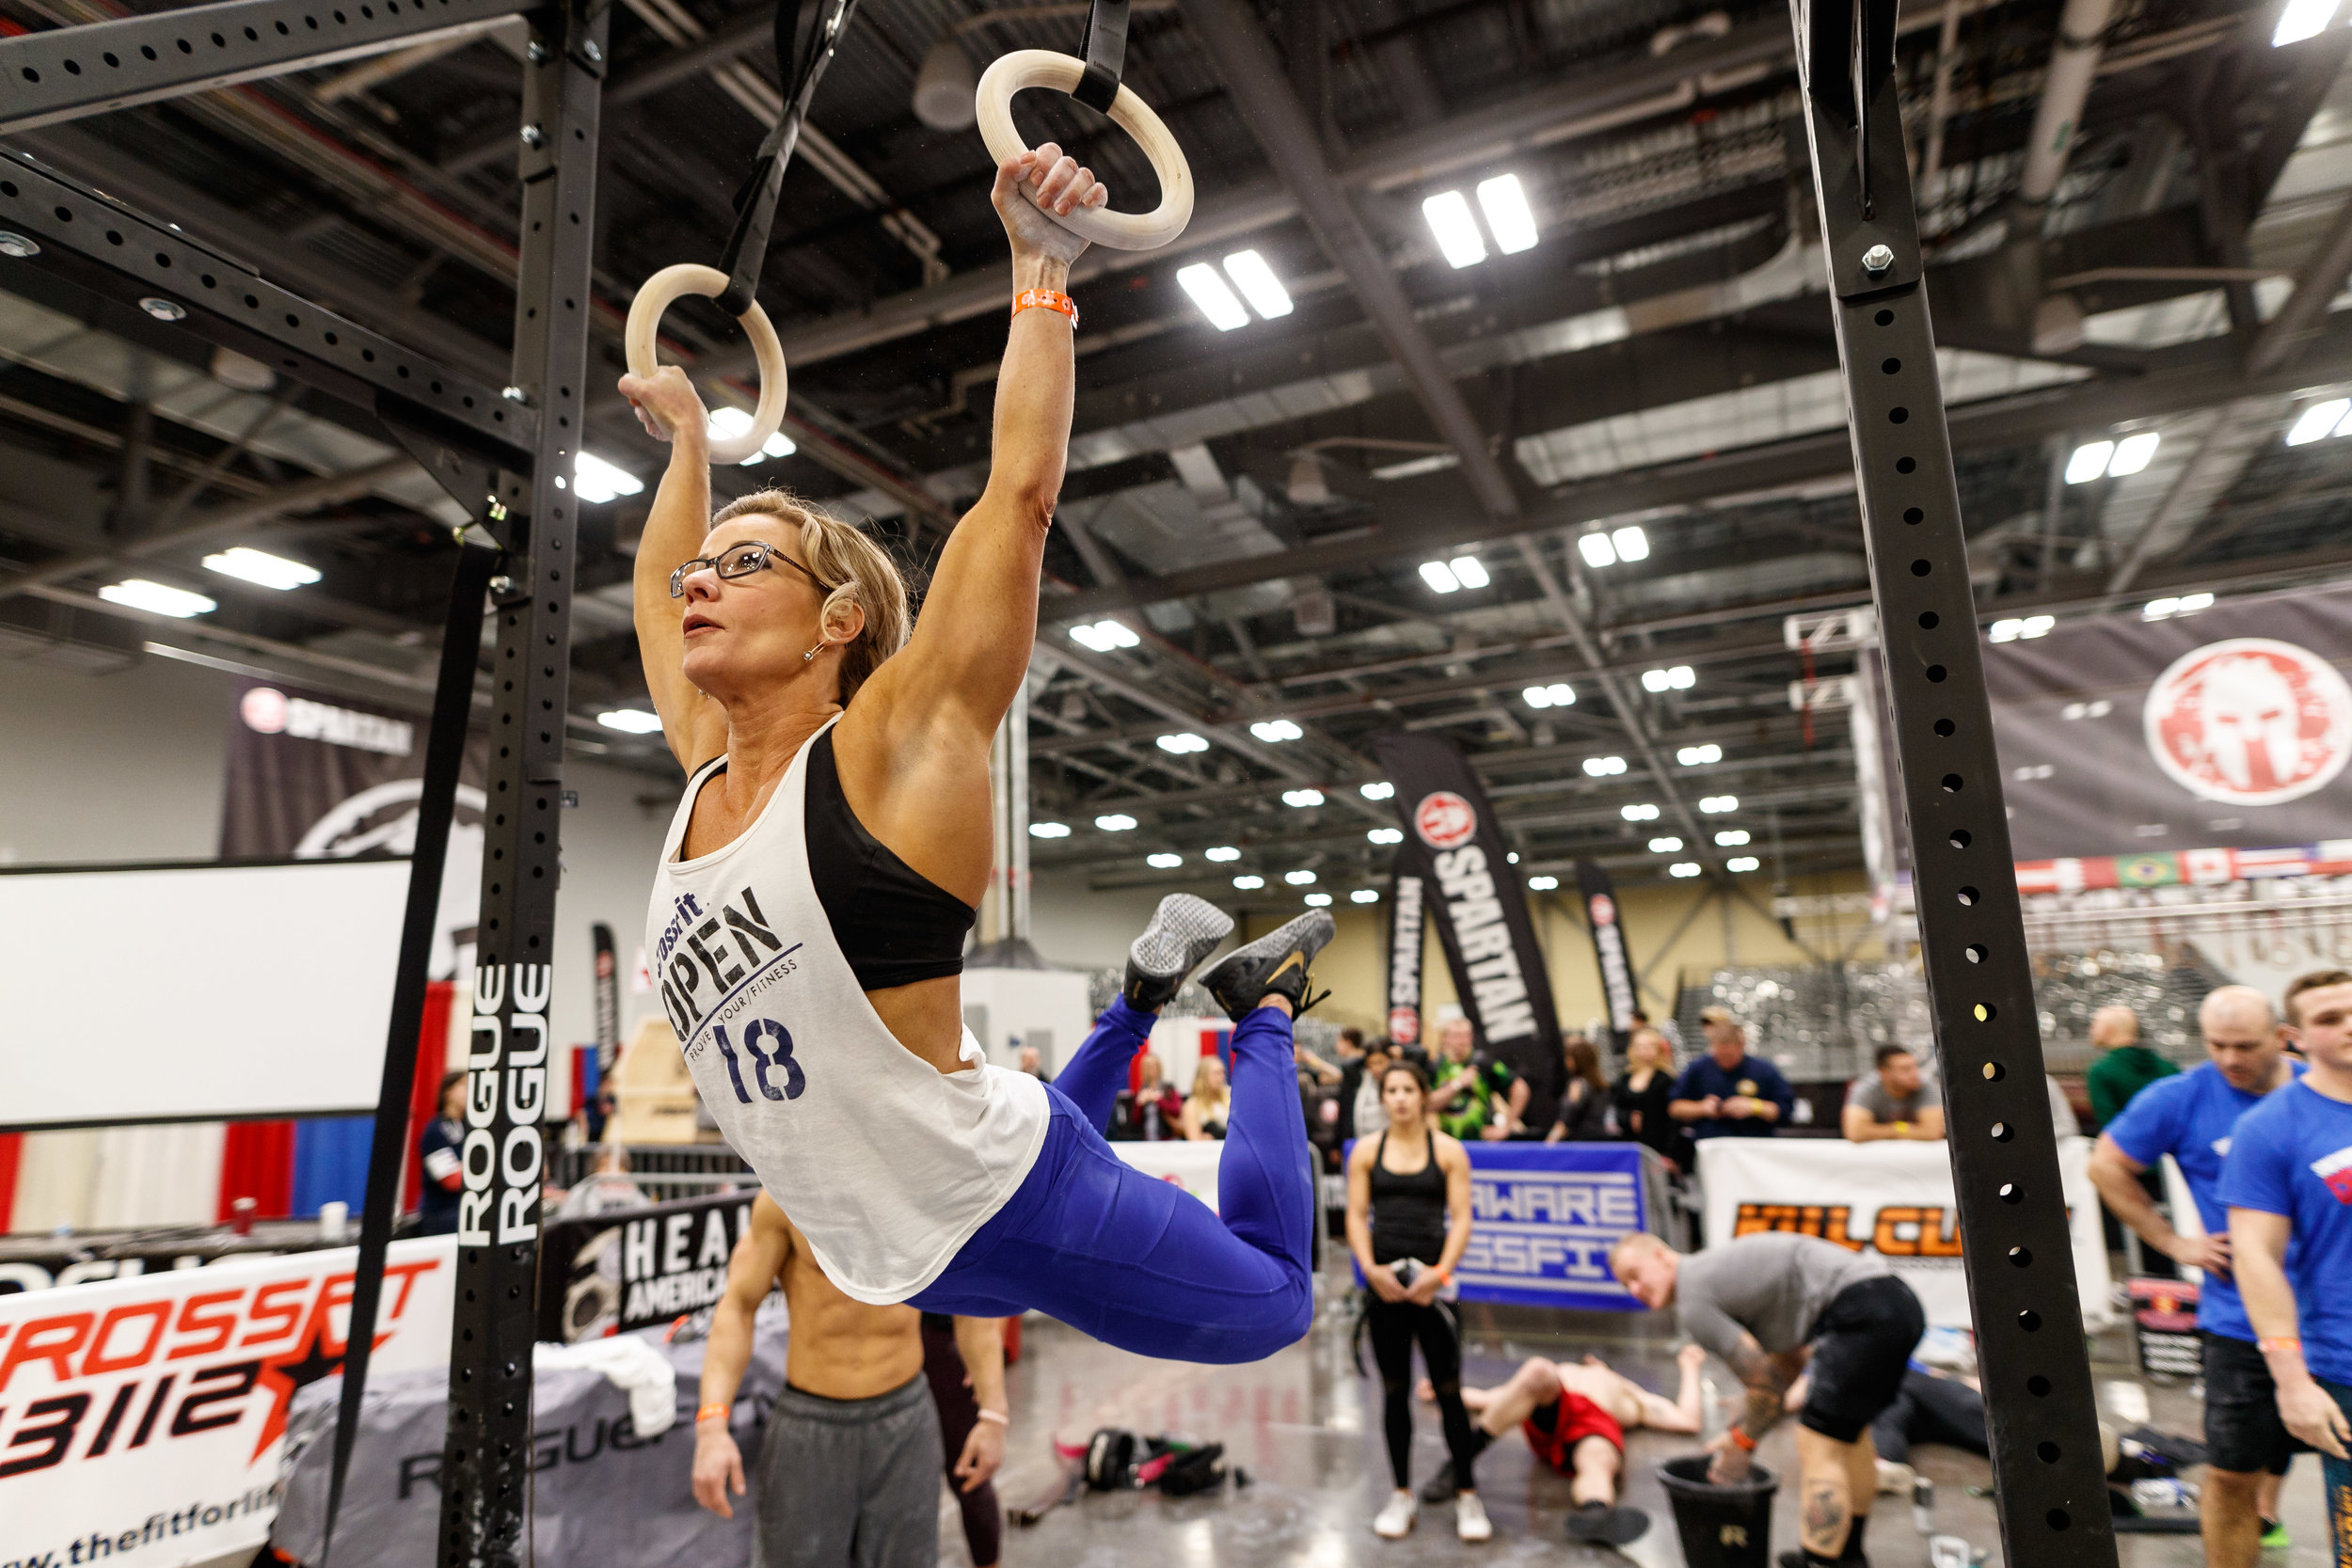 Shawnda Ruffner - finished 243rd in the WORLD in her age division of 40-44 and 19th in the Central East Region in her age division (354th in the individual rankings). Impressive for Shawnda's first real go at the CrossFit Open. Big things to come from her next year as she looks to qualify in the top 200 worldwide.